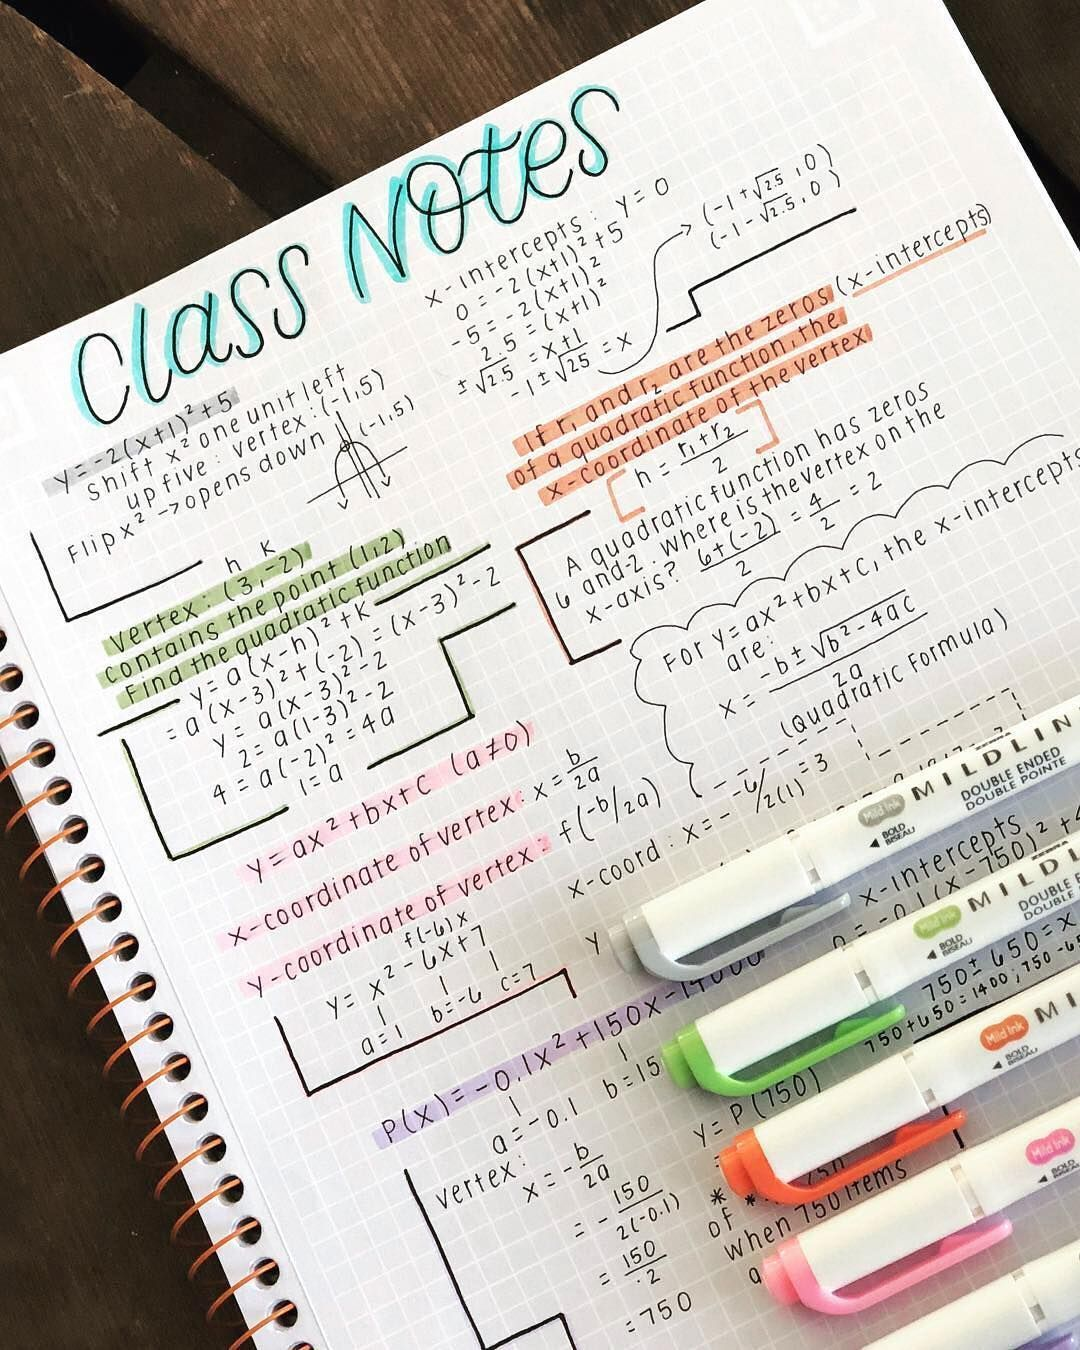 A M Y on Making aesthetic mathematical notes using a pen while the professor is a teacher ... #aestheticnotes